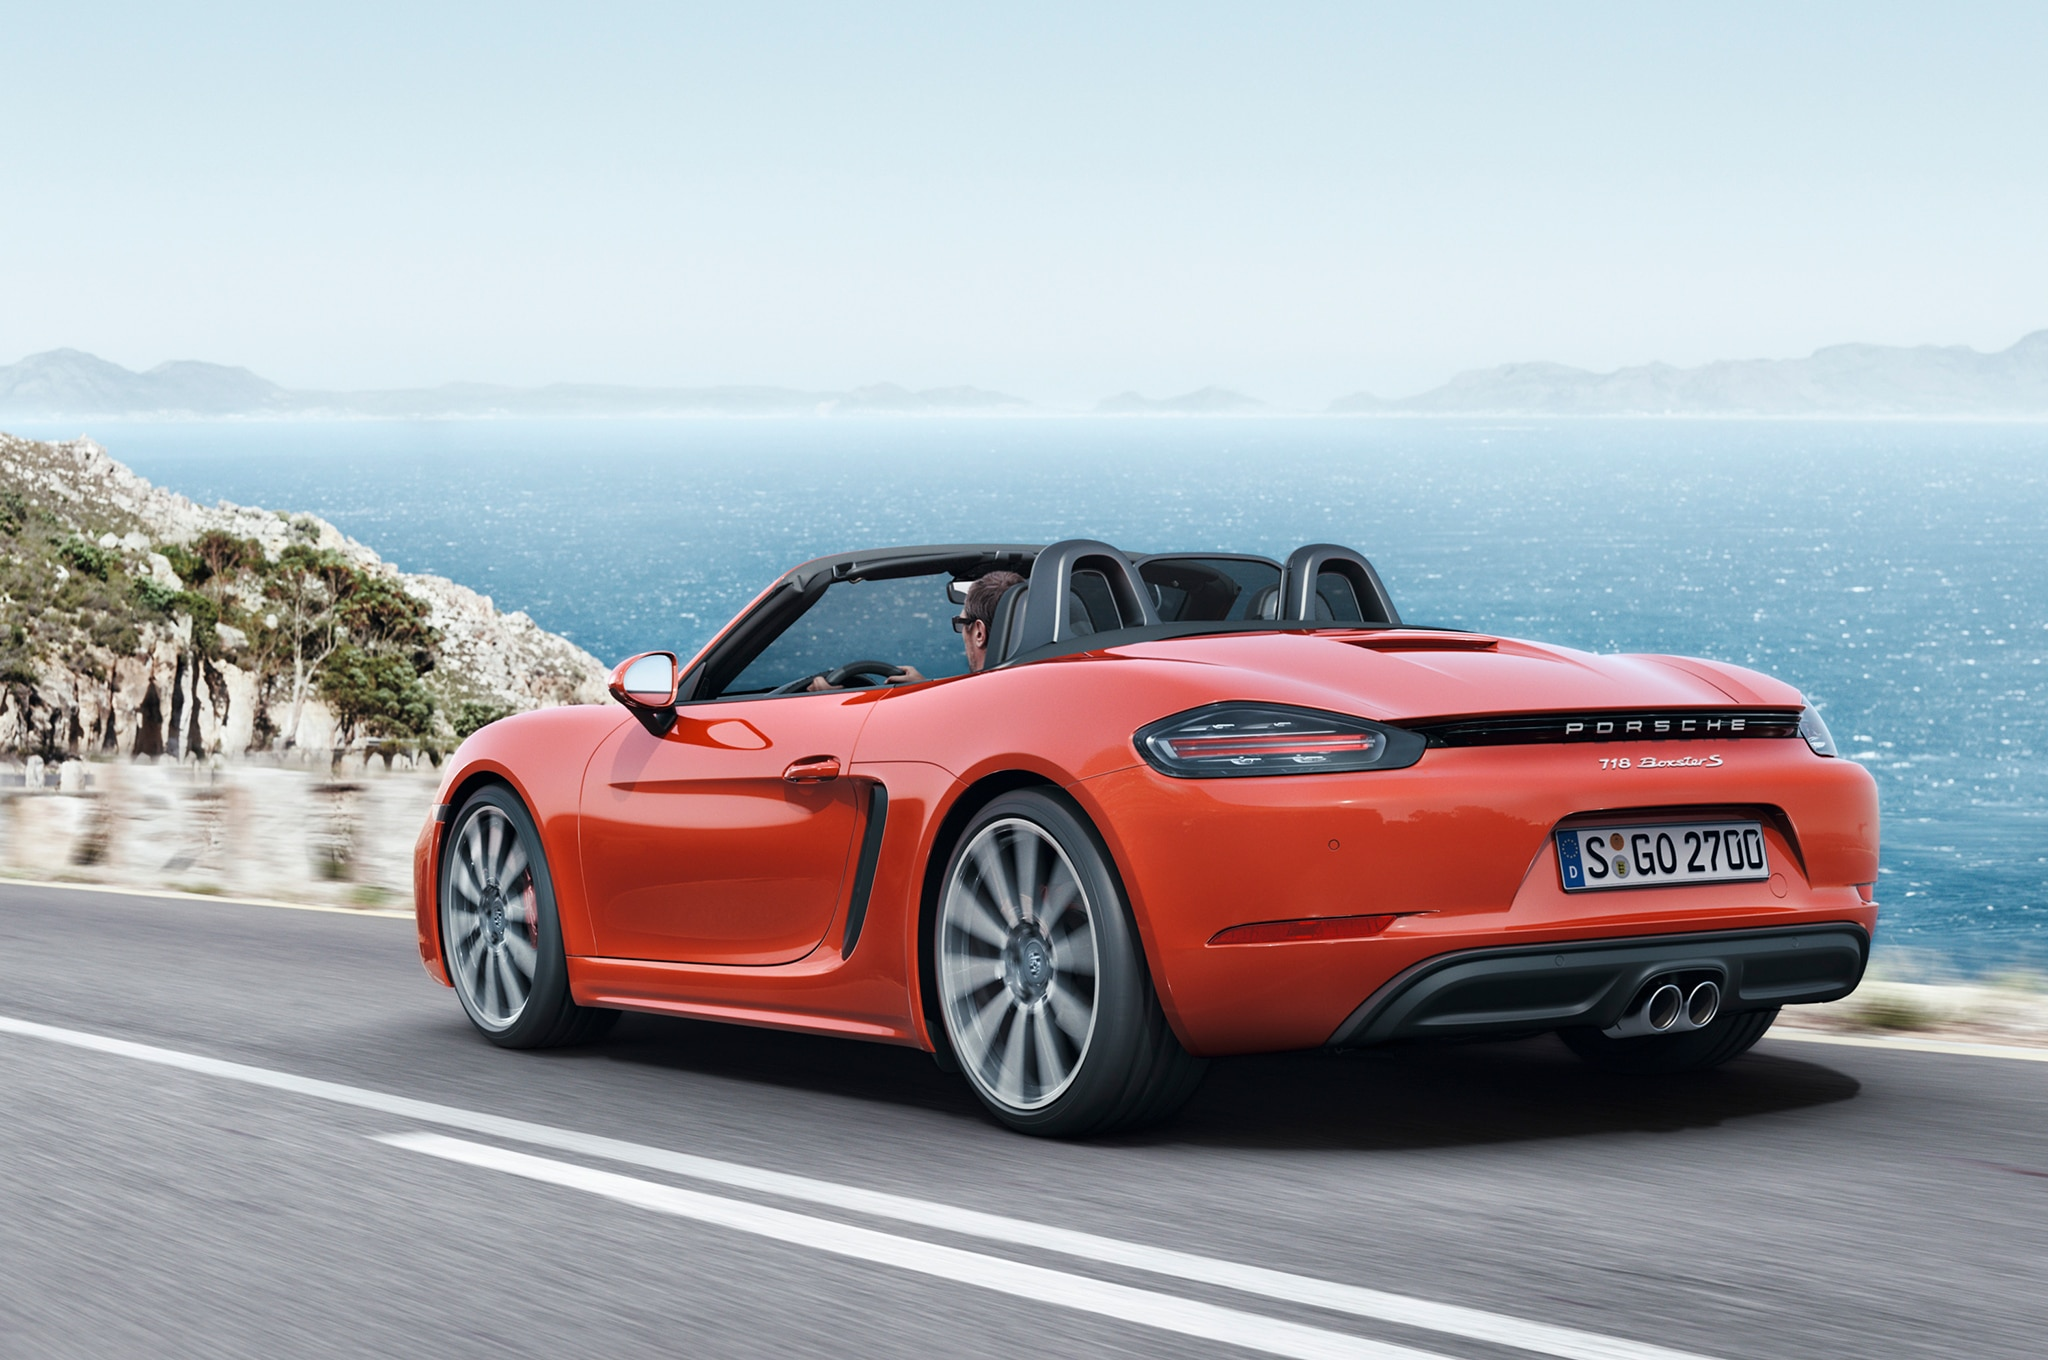 2017 porsche 718 boxster fully revealed with turbo flat four engines. Black Bedroom Furniture Sets. Home Design Ideas